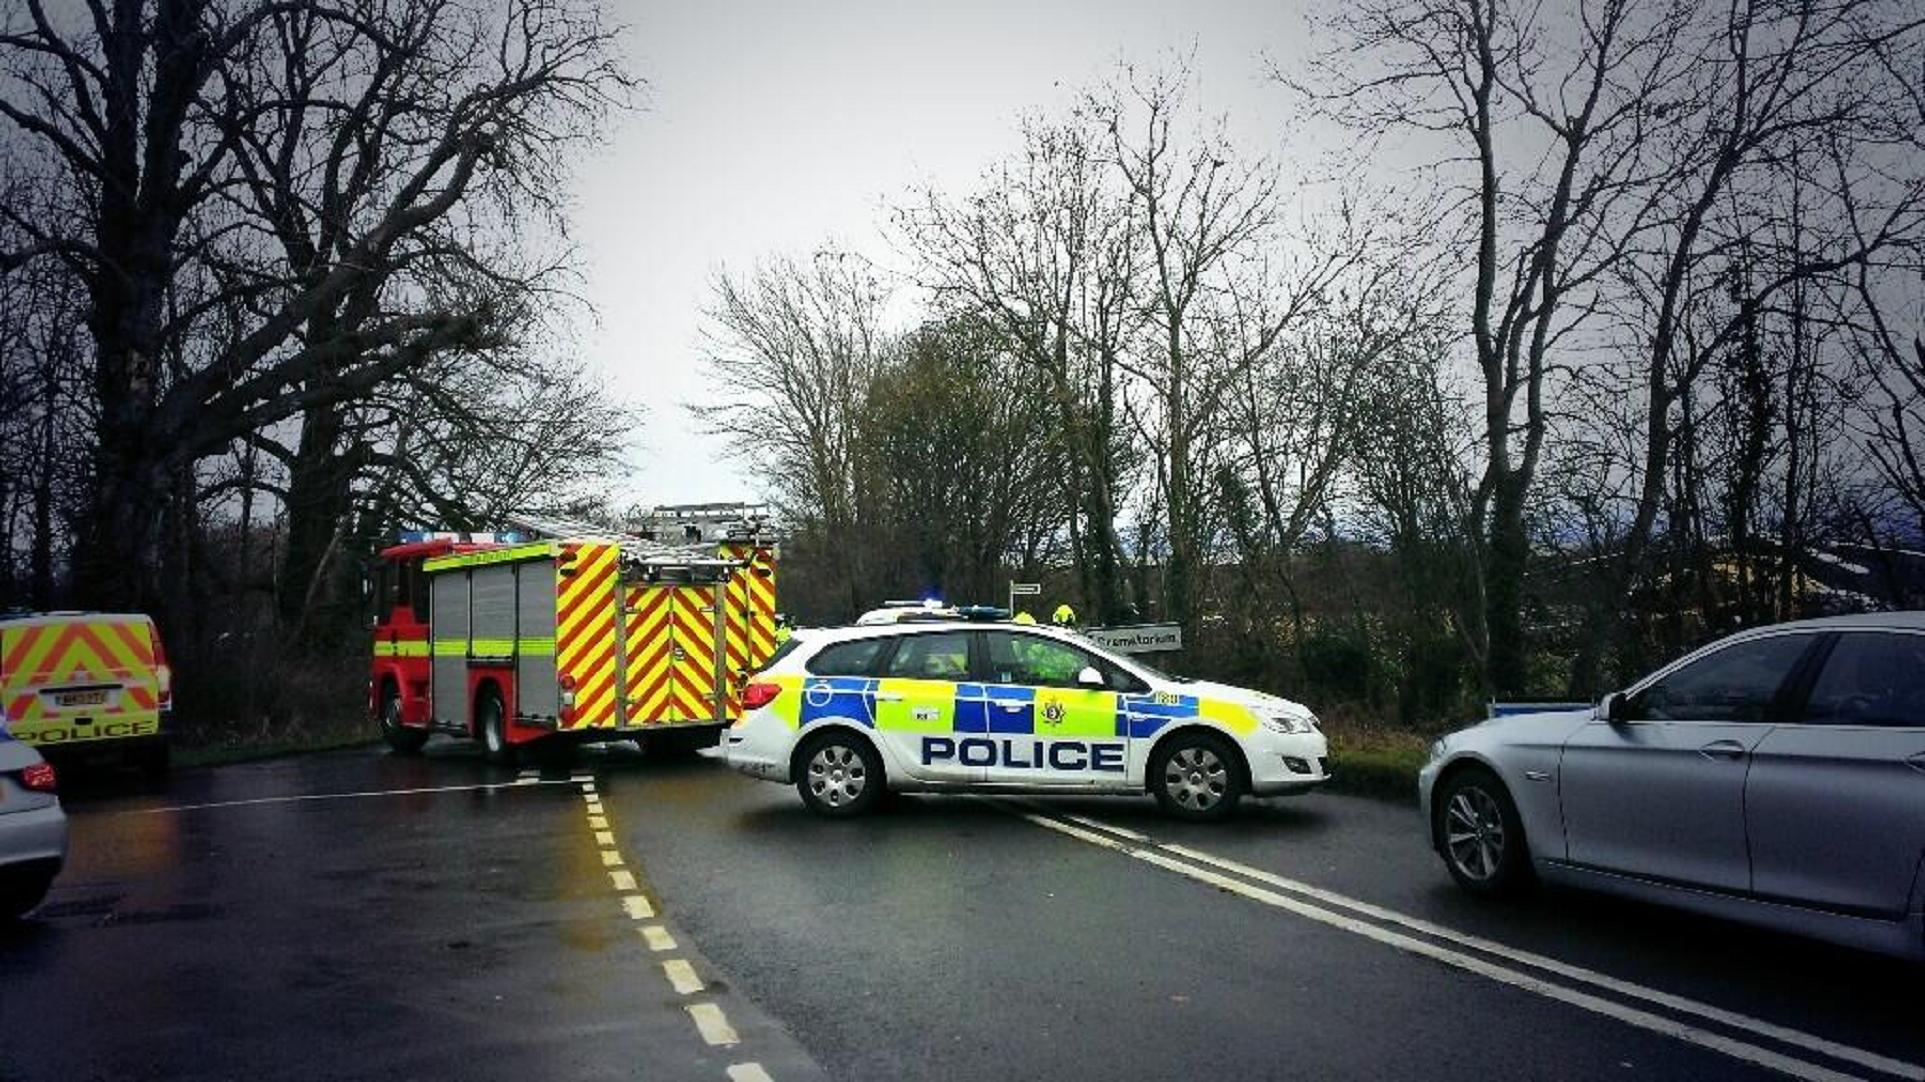 The emergency services at the crash scene on Kingsdown Road